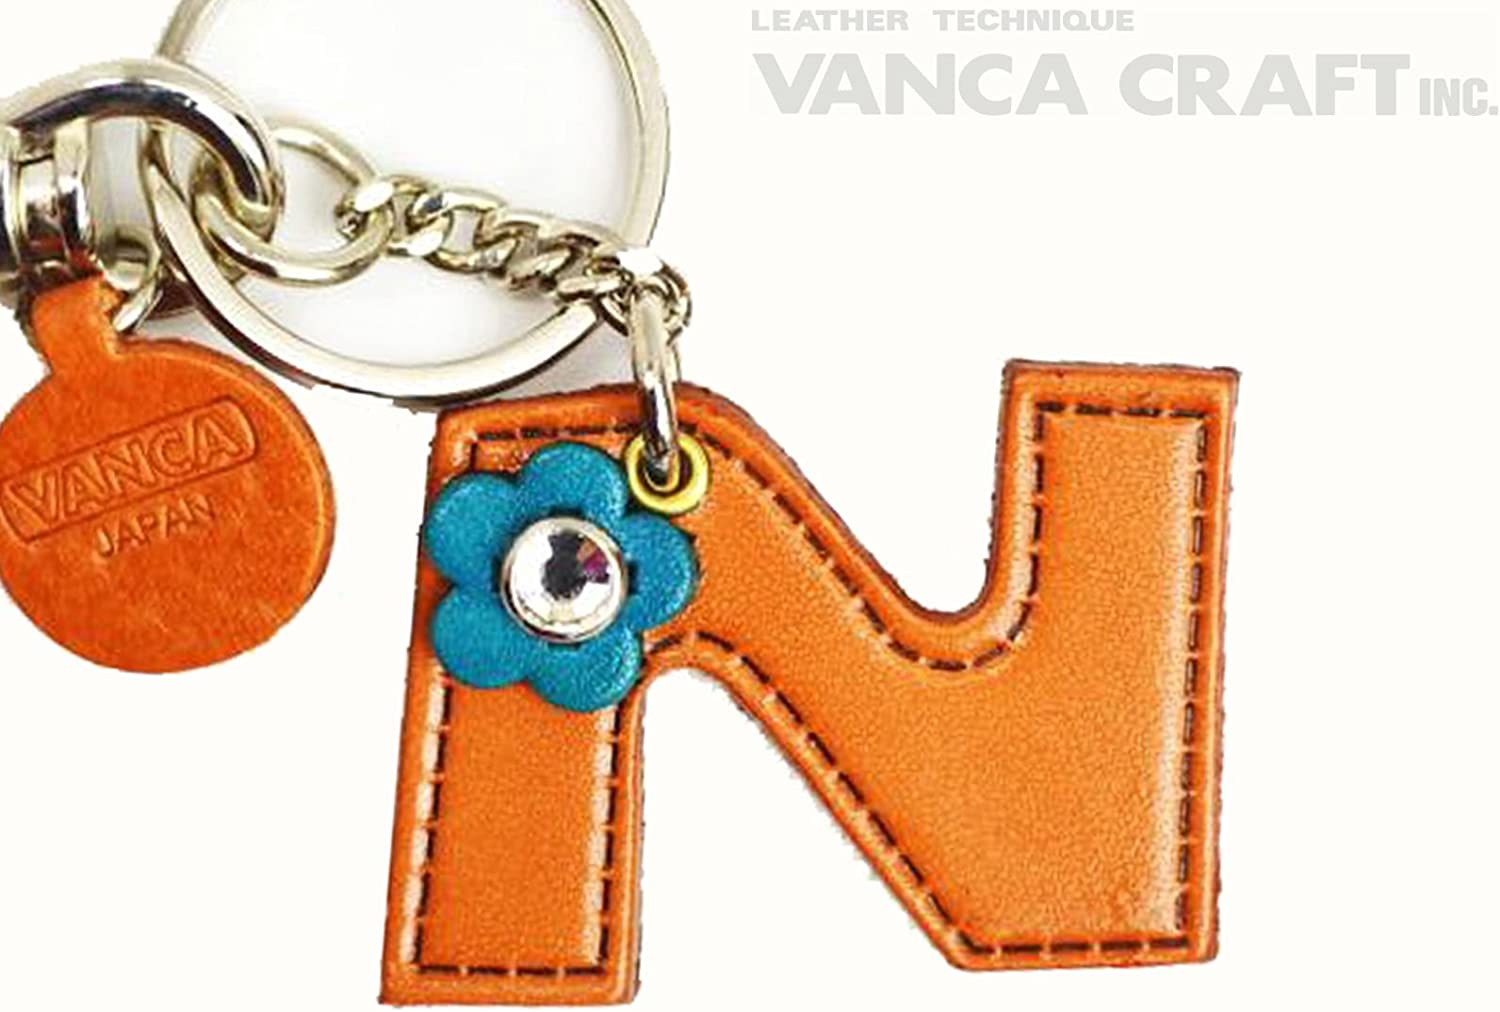 Genuine leather bag charm initial N [handmade made in Japan, new, craftsman] [VANCA] (japan import) B003R5R1C0 Moderater Preis  | Moderate Kosten